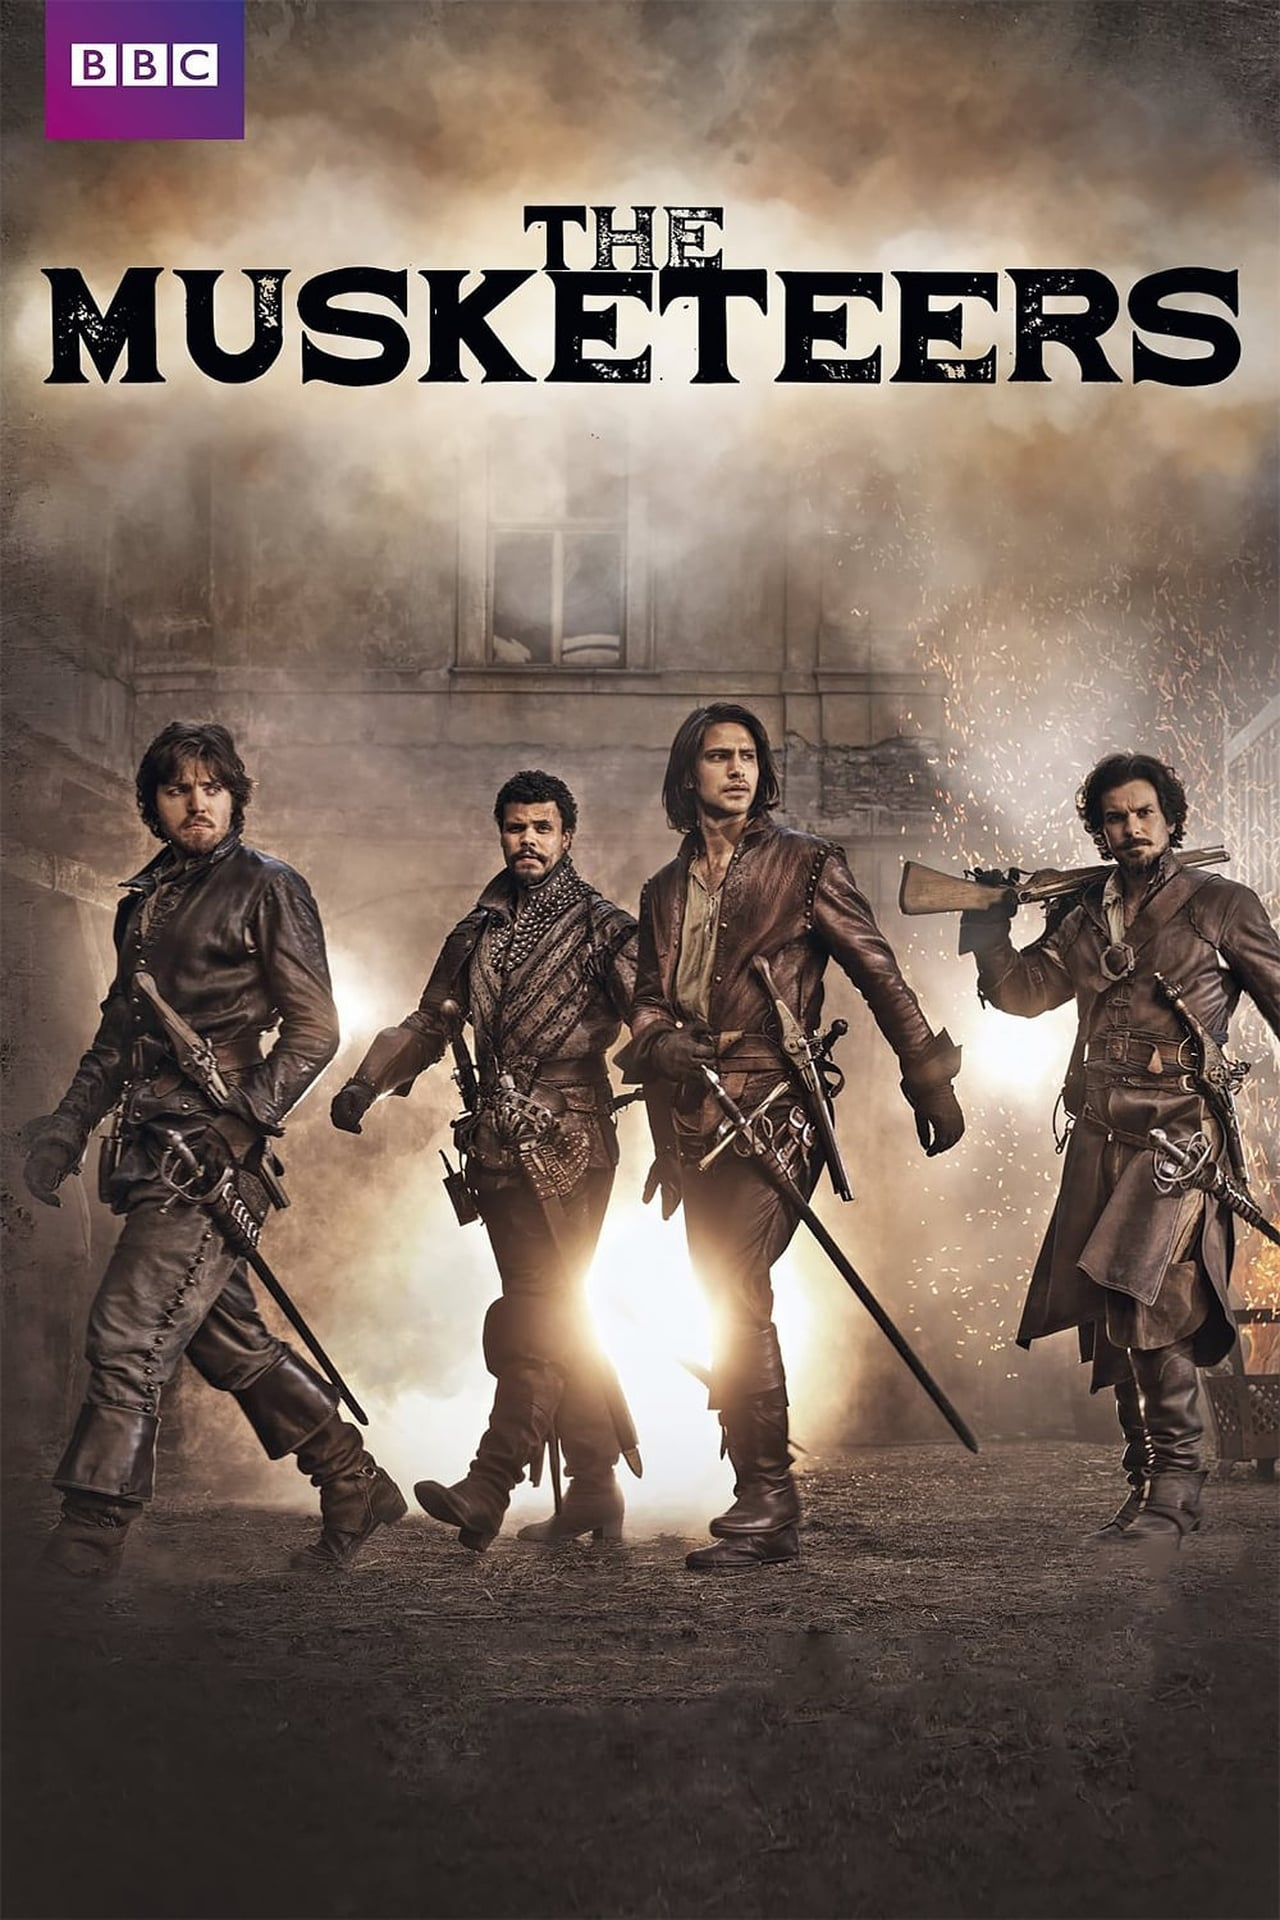 The Musketeers (season 3)